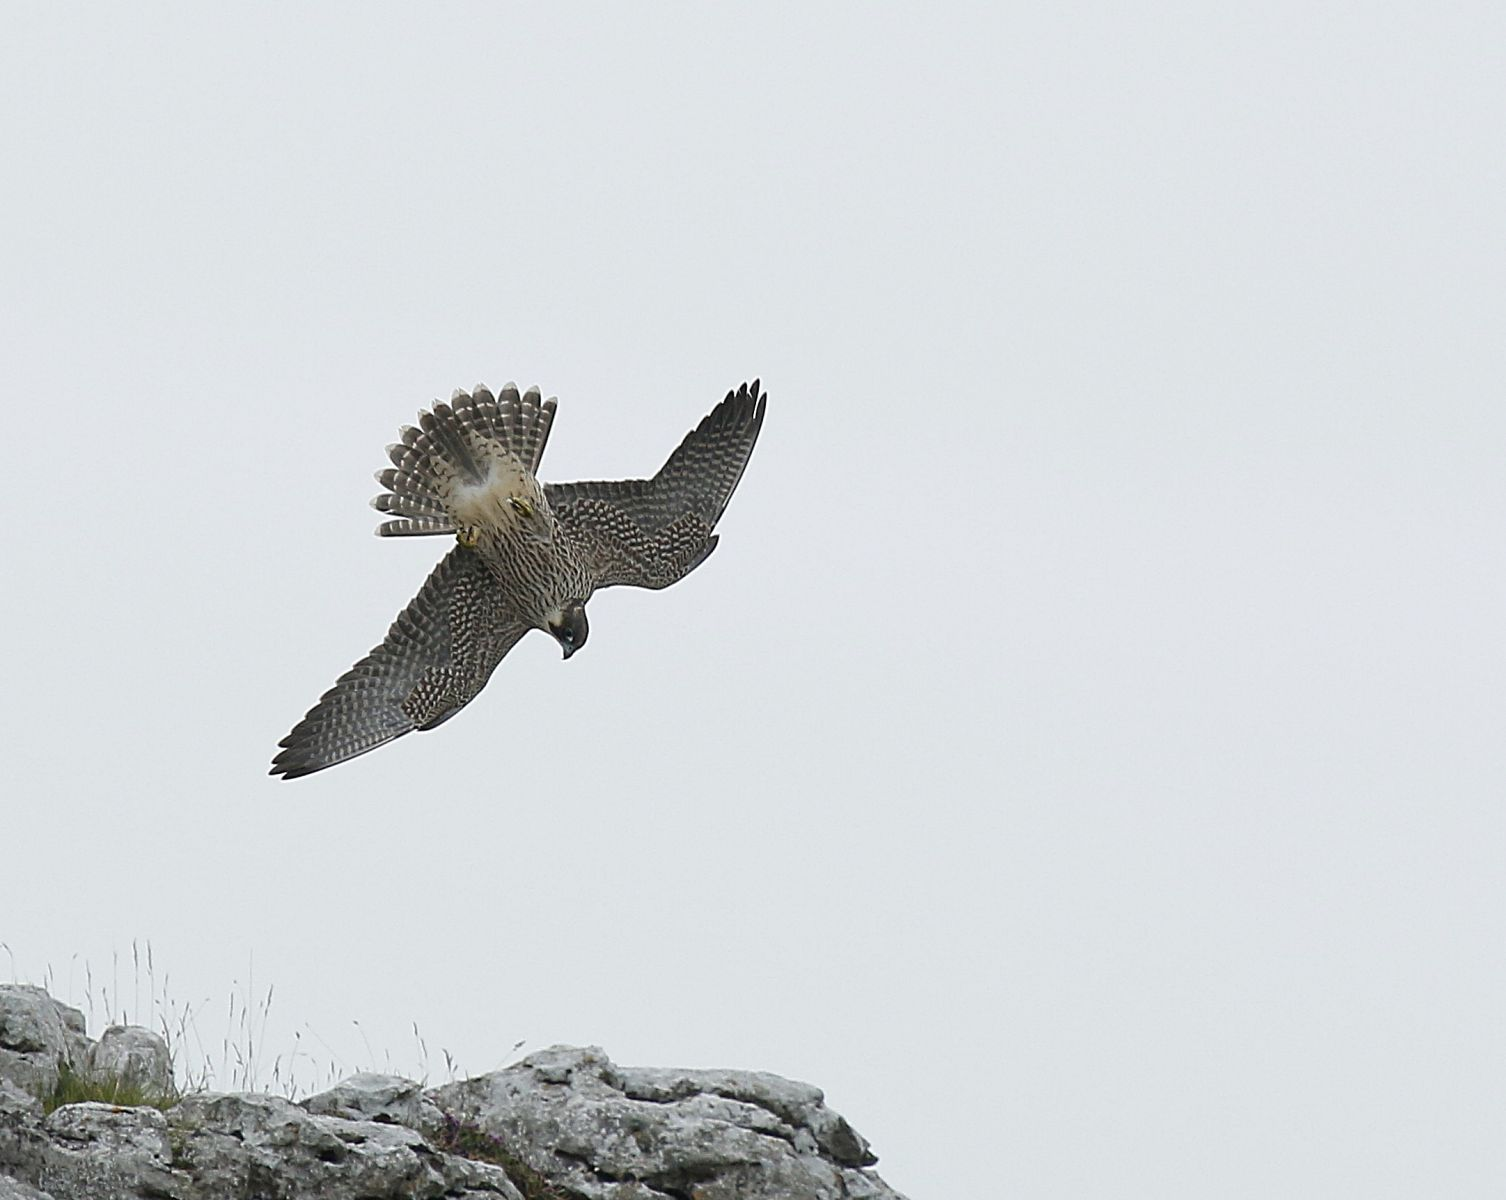 Peregrine falcon at Malham by Dave Dimmock